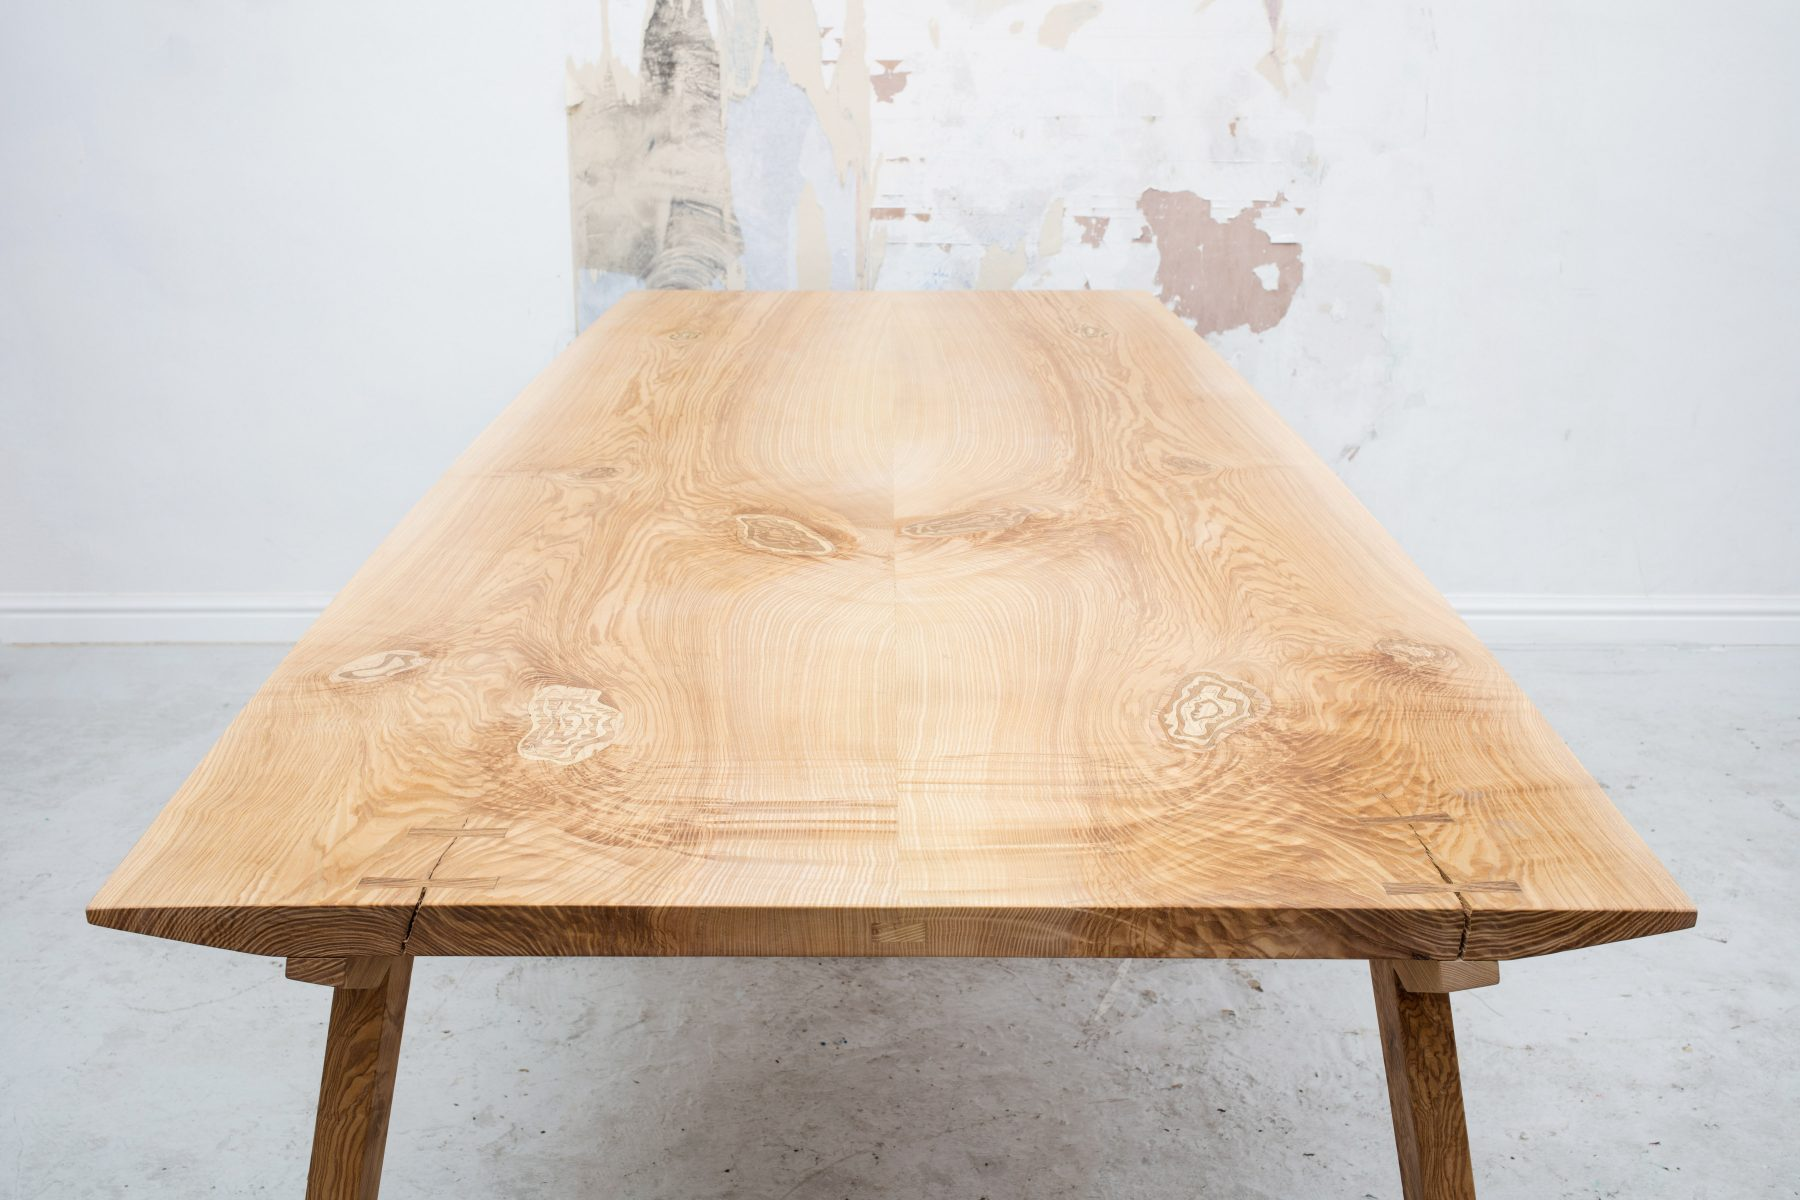 Jan Hendzel Studio olive ash table marquetry-3